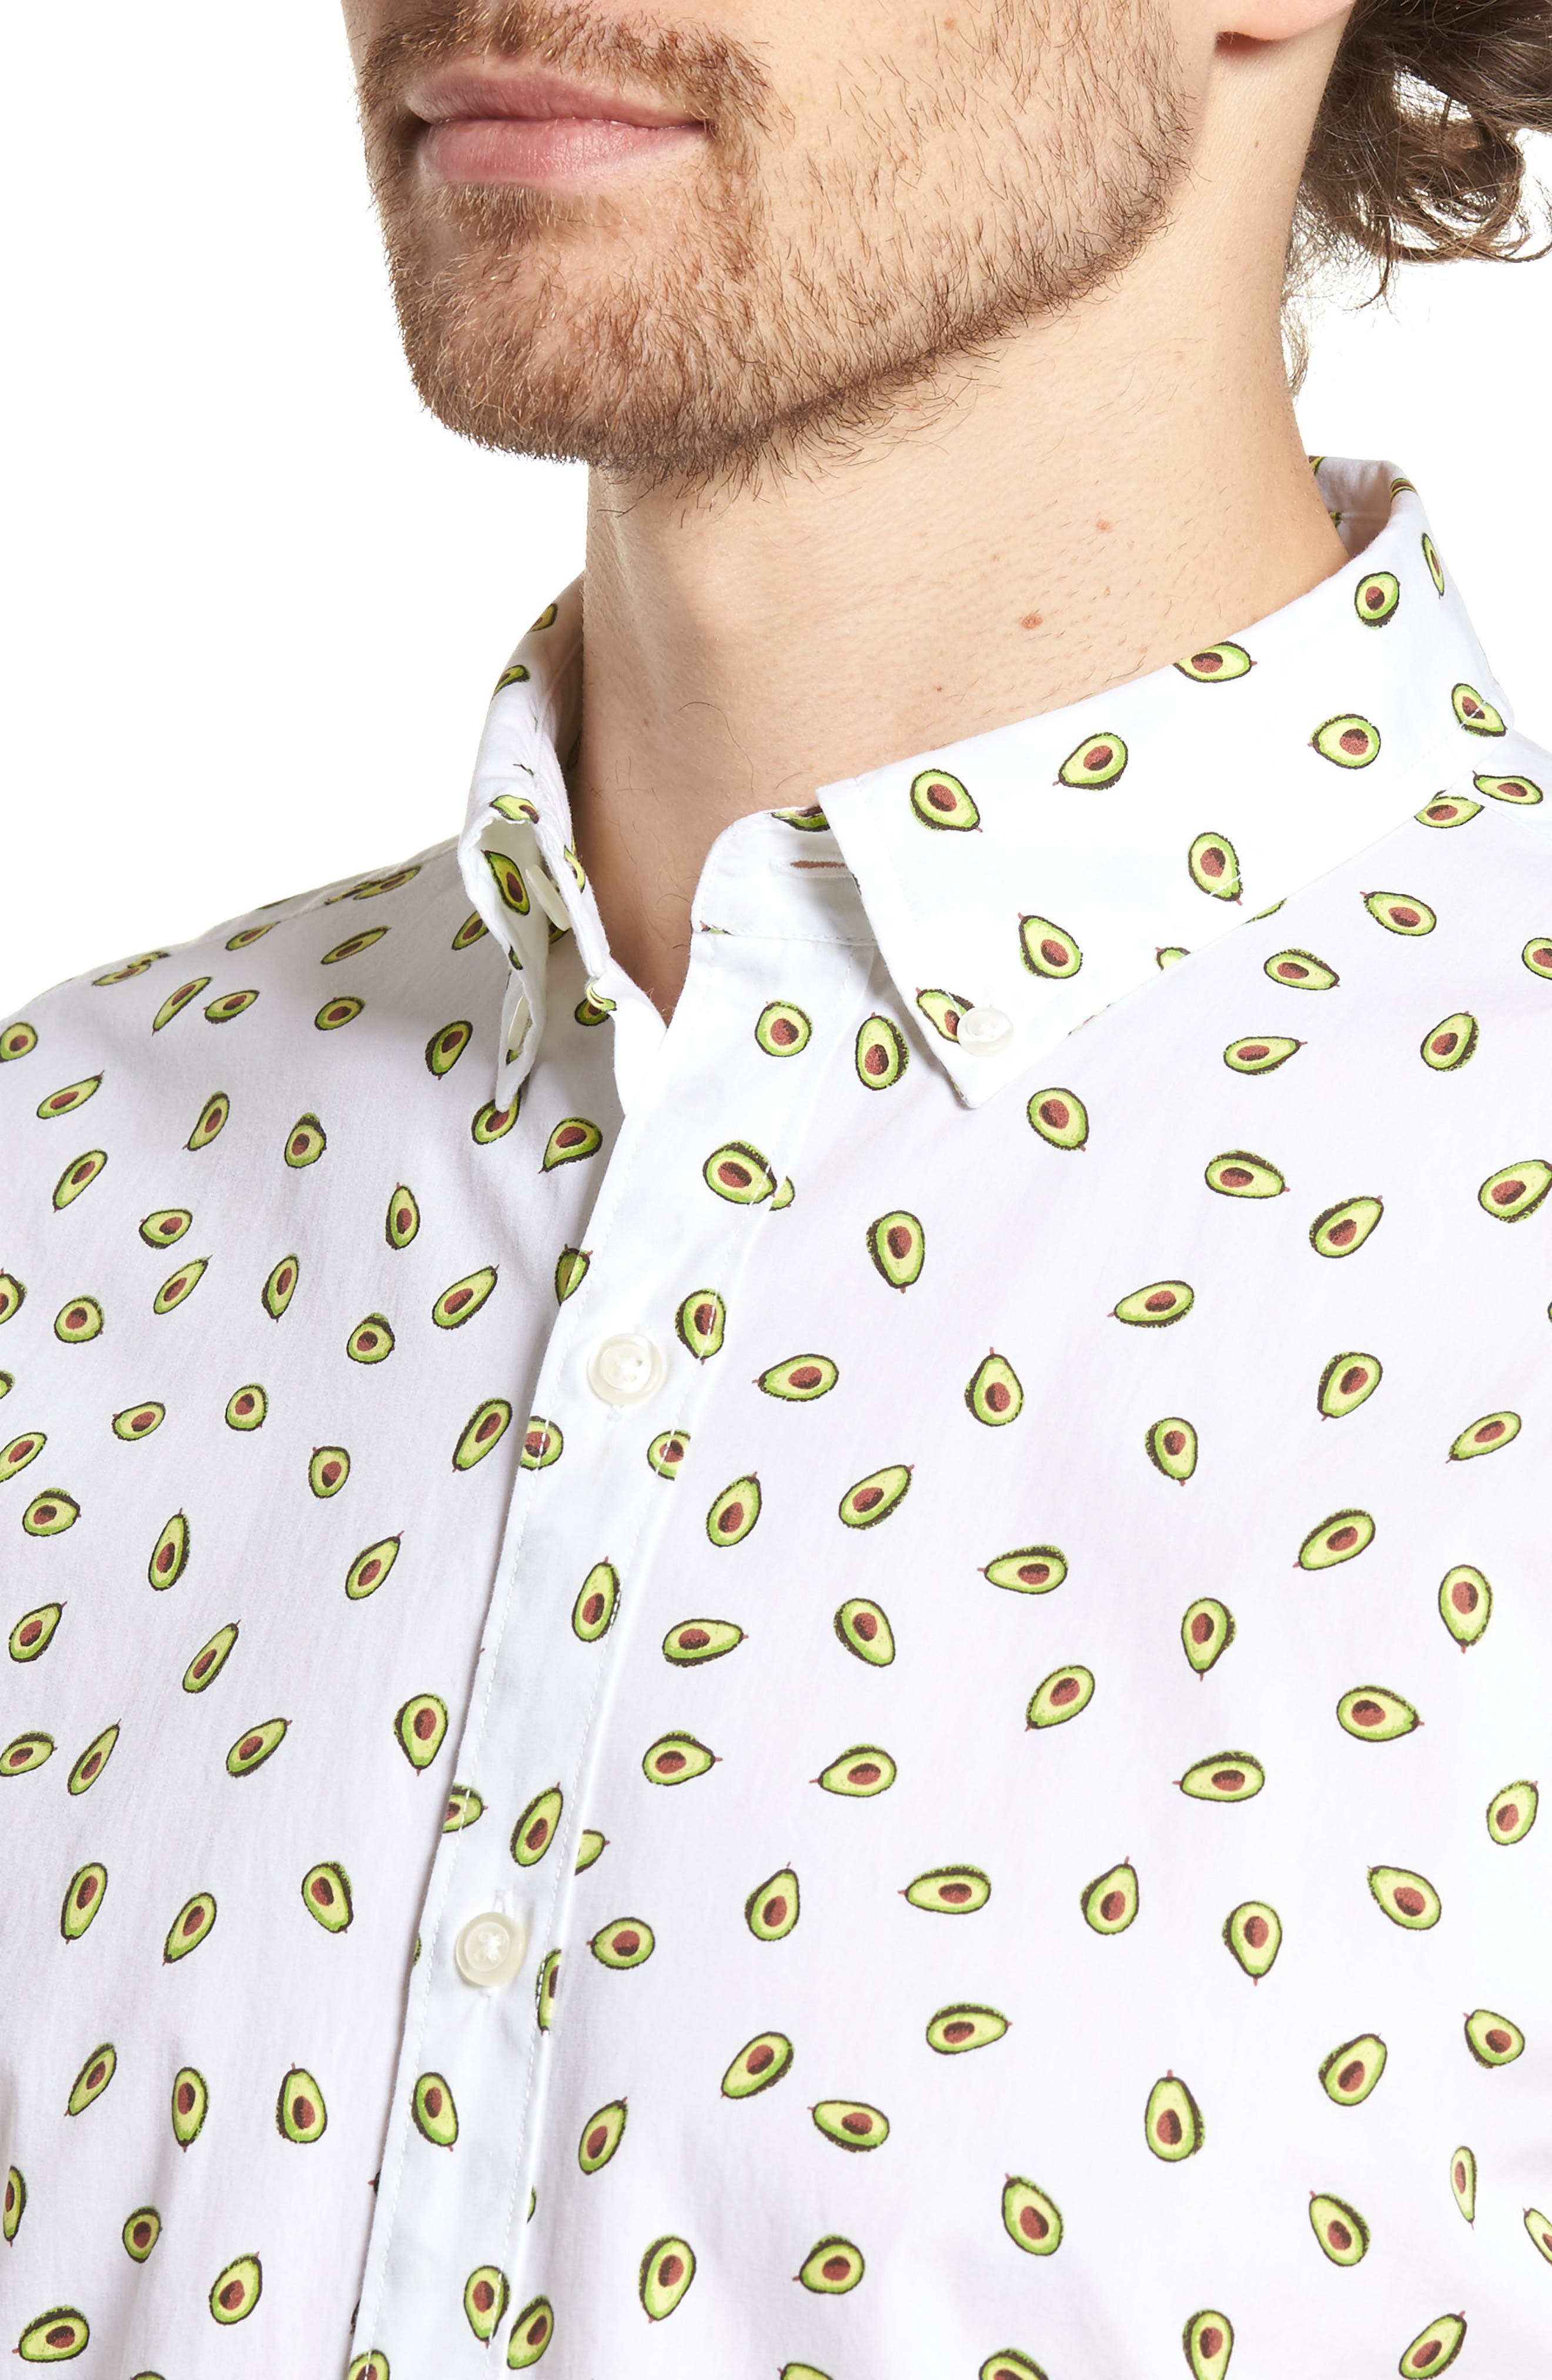 Slim Fit Print Short Sleeve Sport Shirt,                             Alternate thumbnail 2, color,                             Avocados - Key Lime